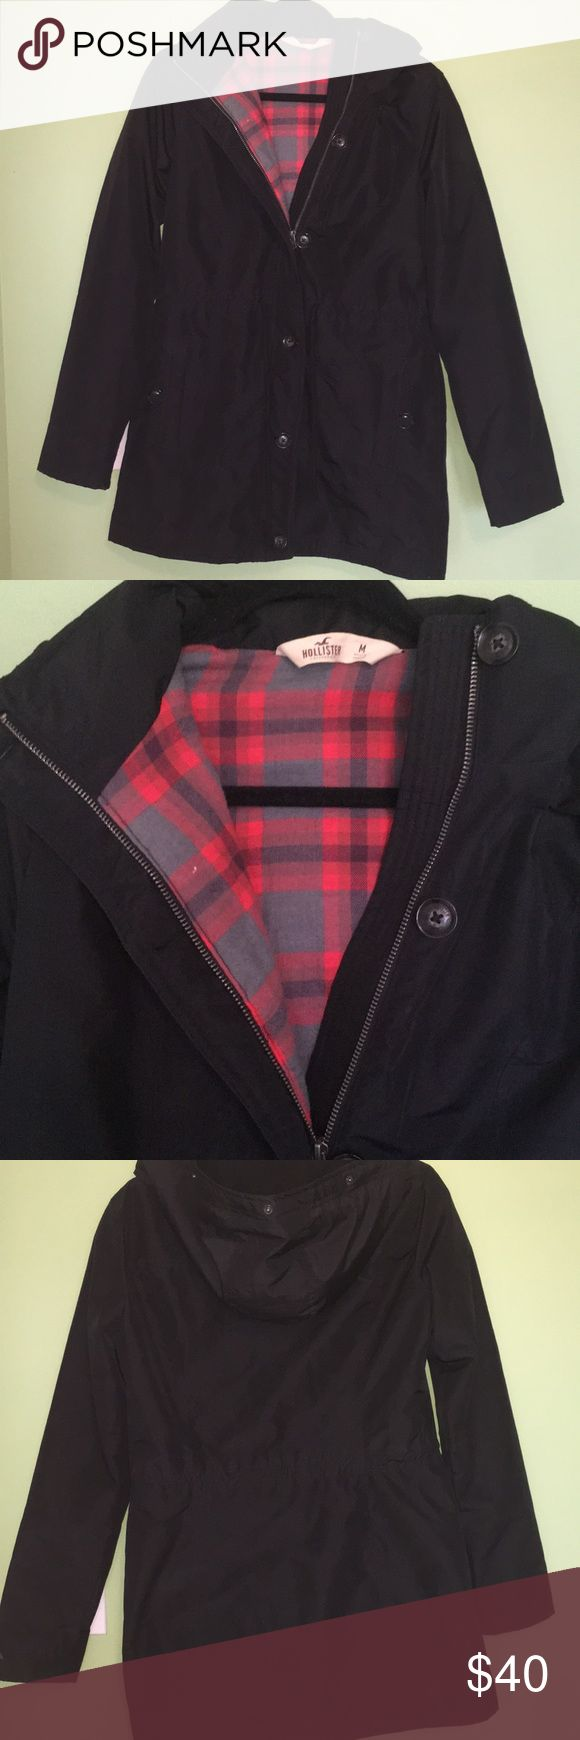 Hollister Jacket Hollister Jacket, Size Medium with plaid interior lining. Outer material similar to rain jacket material. With buttons and zipper. In great condition! Hollister Jackets & Coats